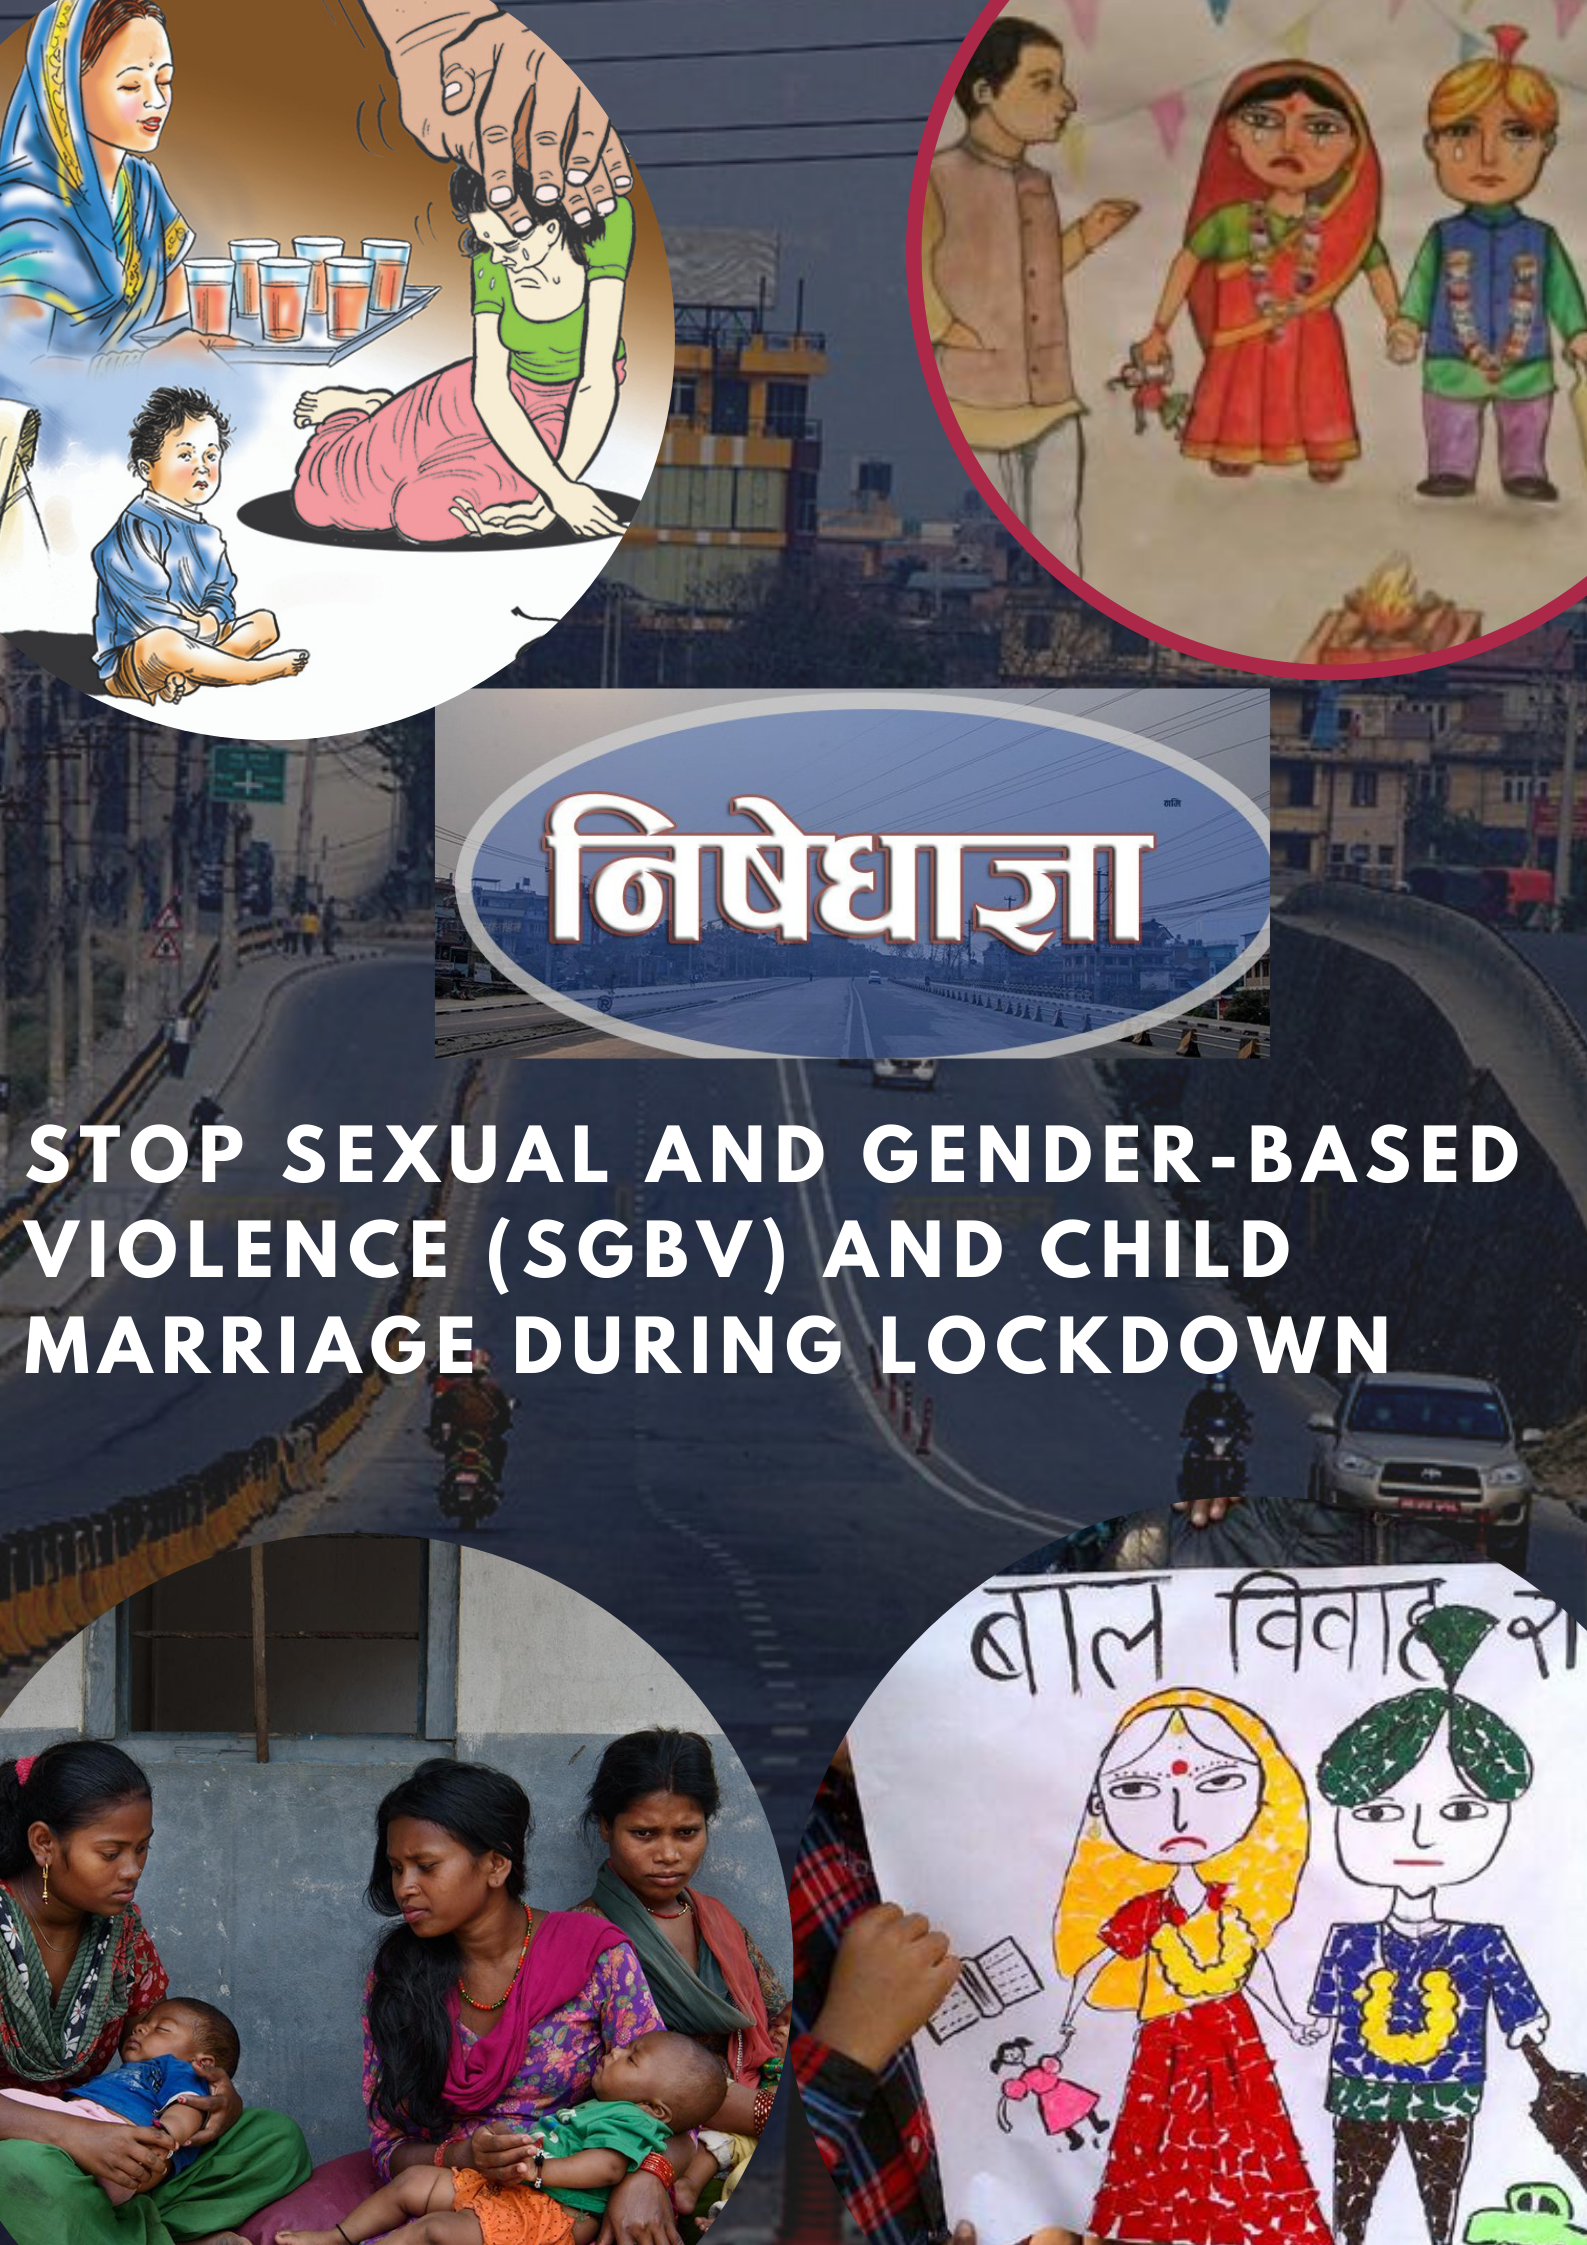 Sexual and Gender-Based Violence (SGBV) and Child Marriage during Lockdown